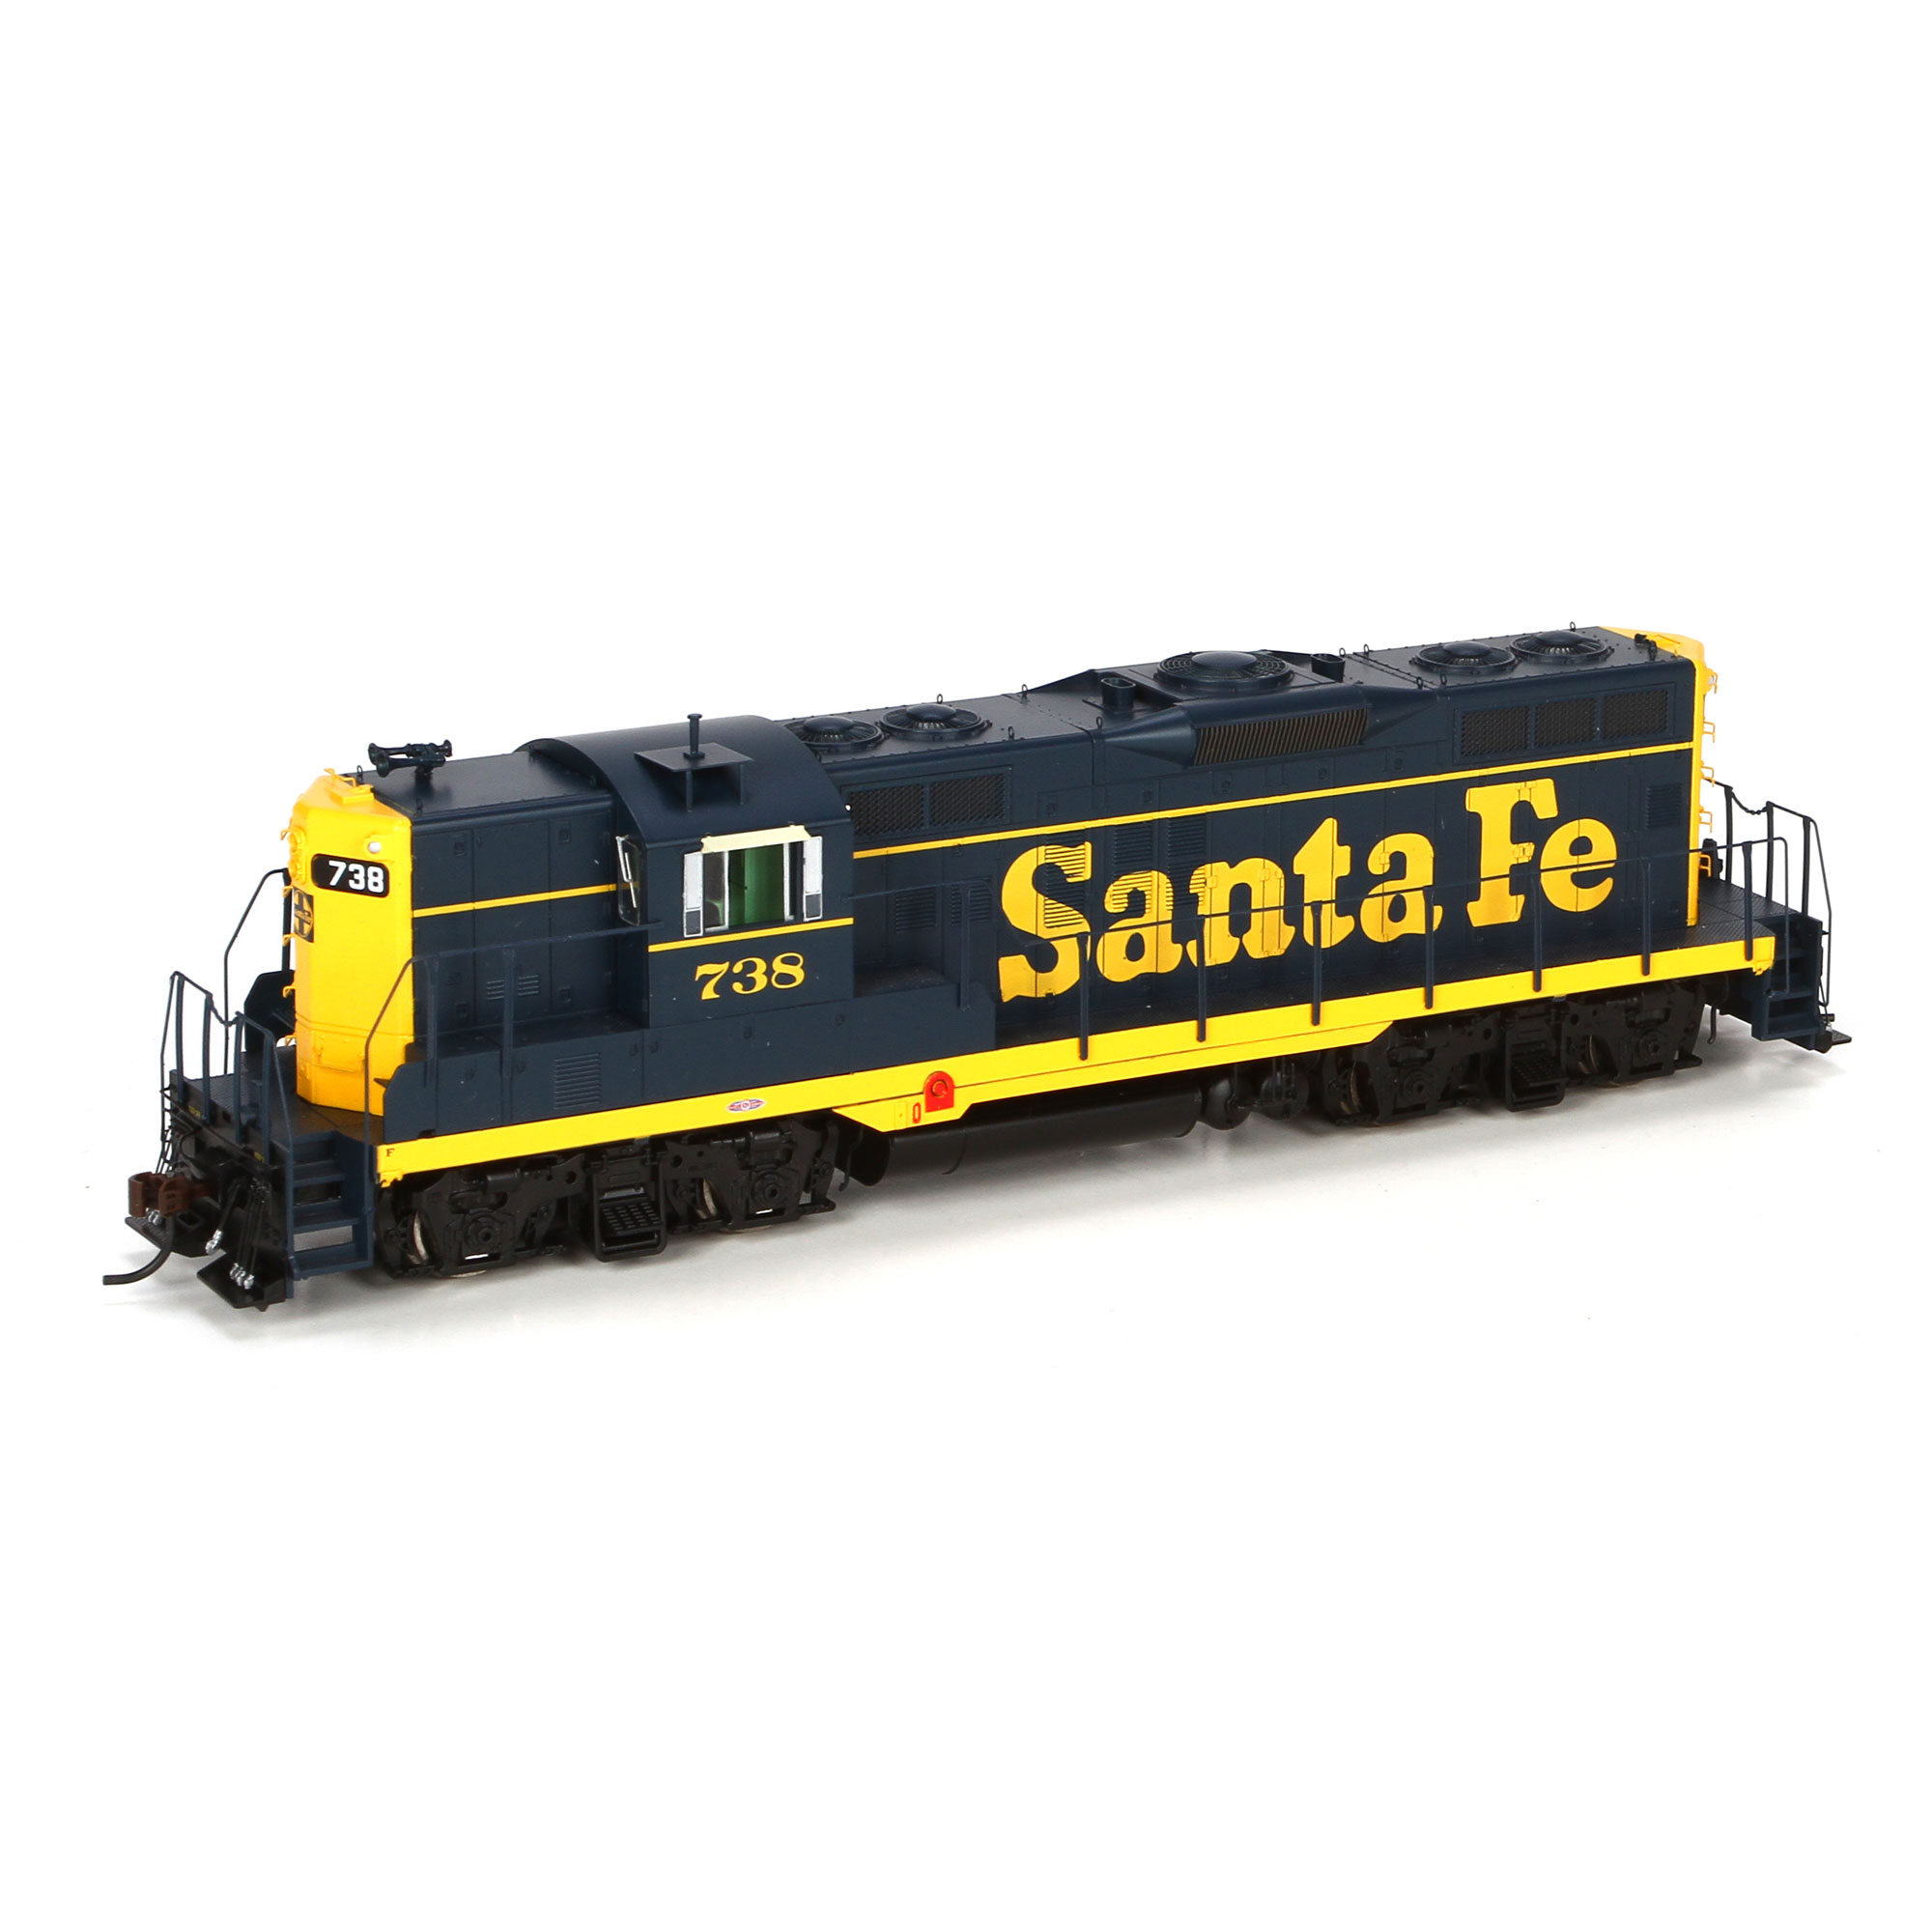 Ho Gp9 Sf 738 Athg62483 Athearn Trains